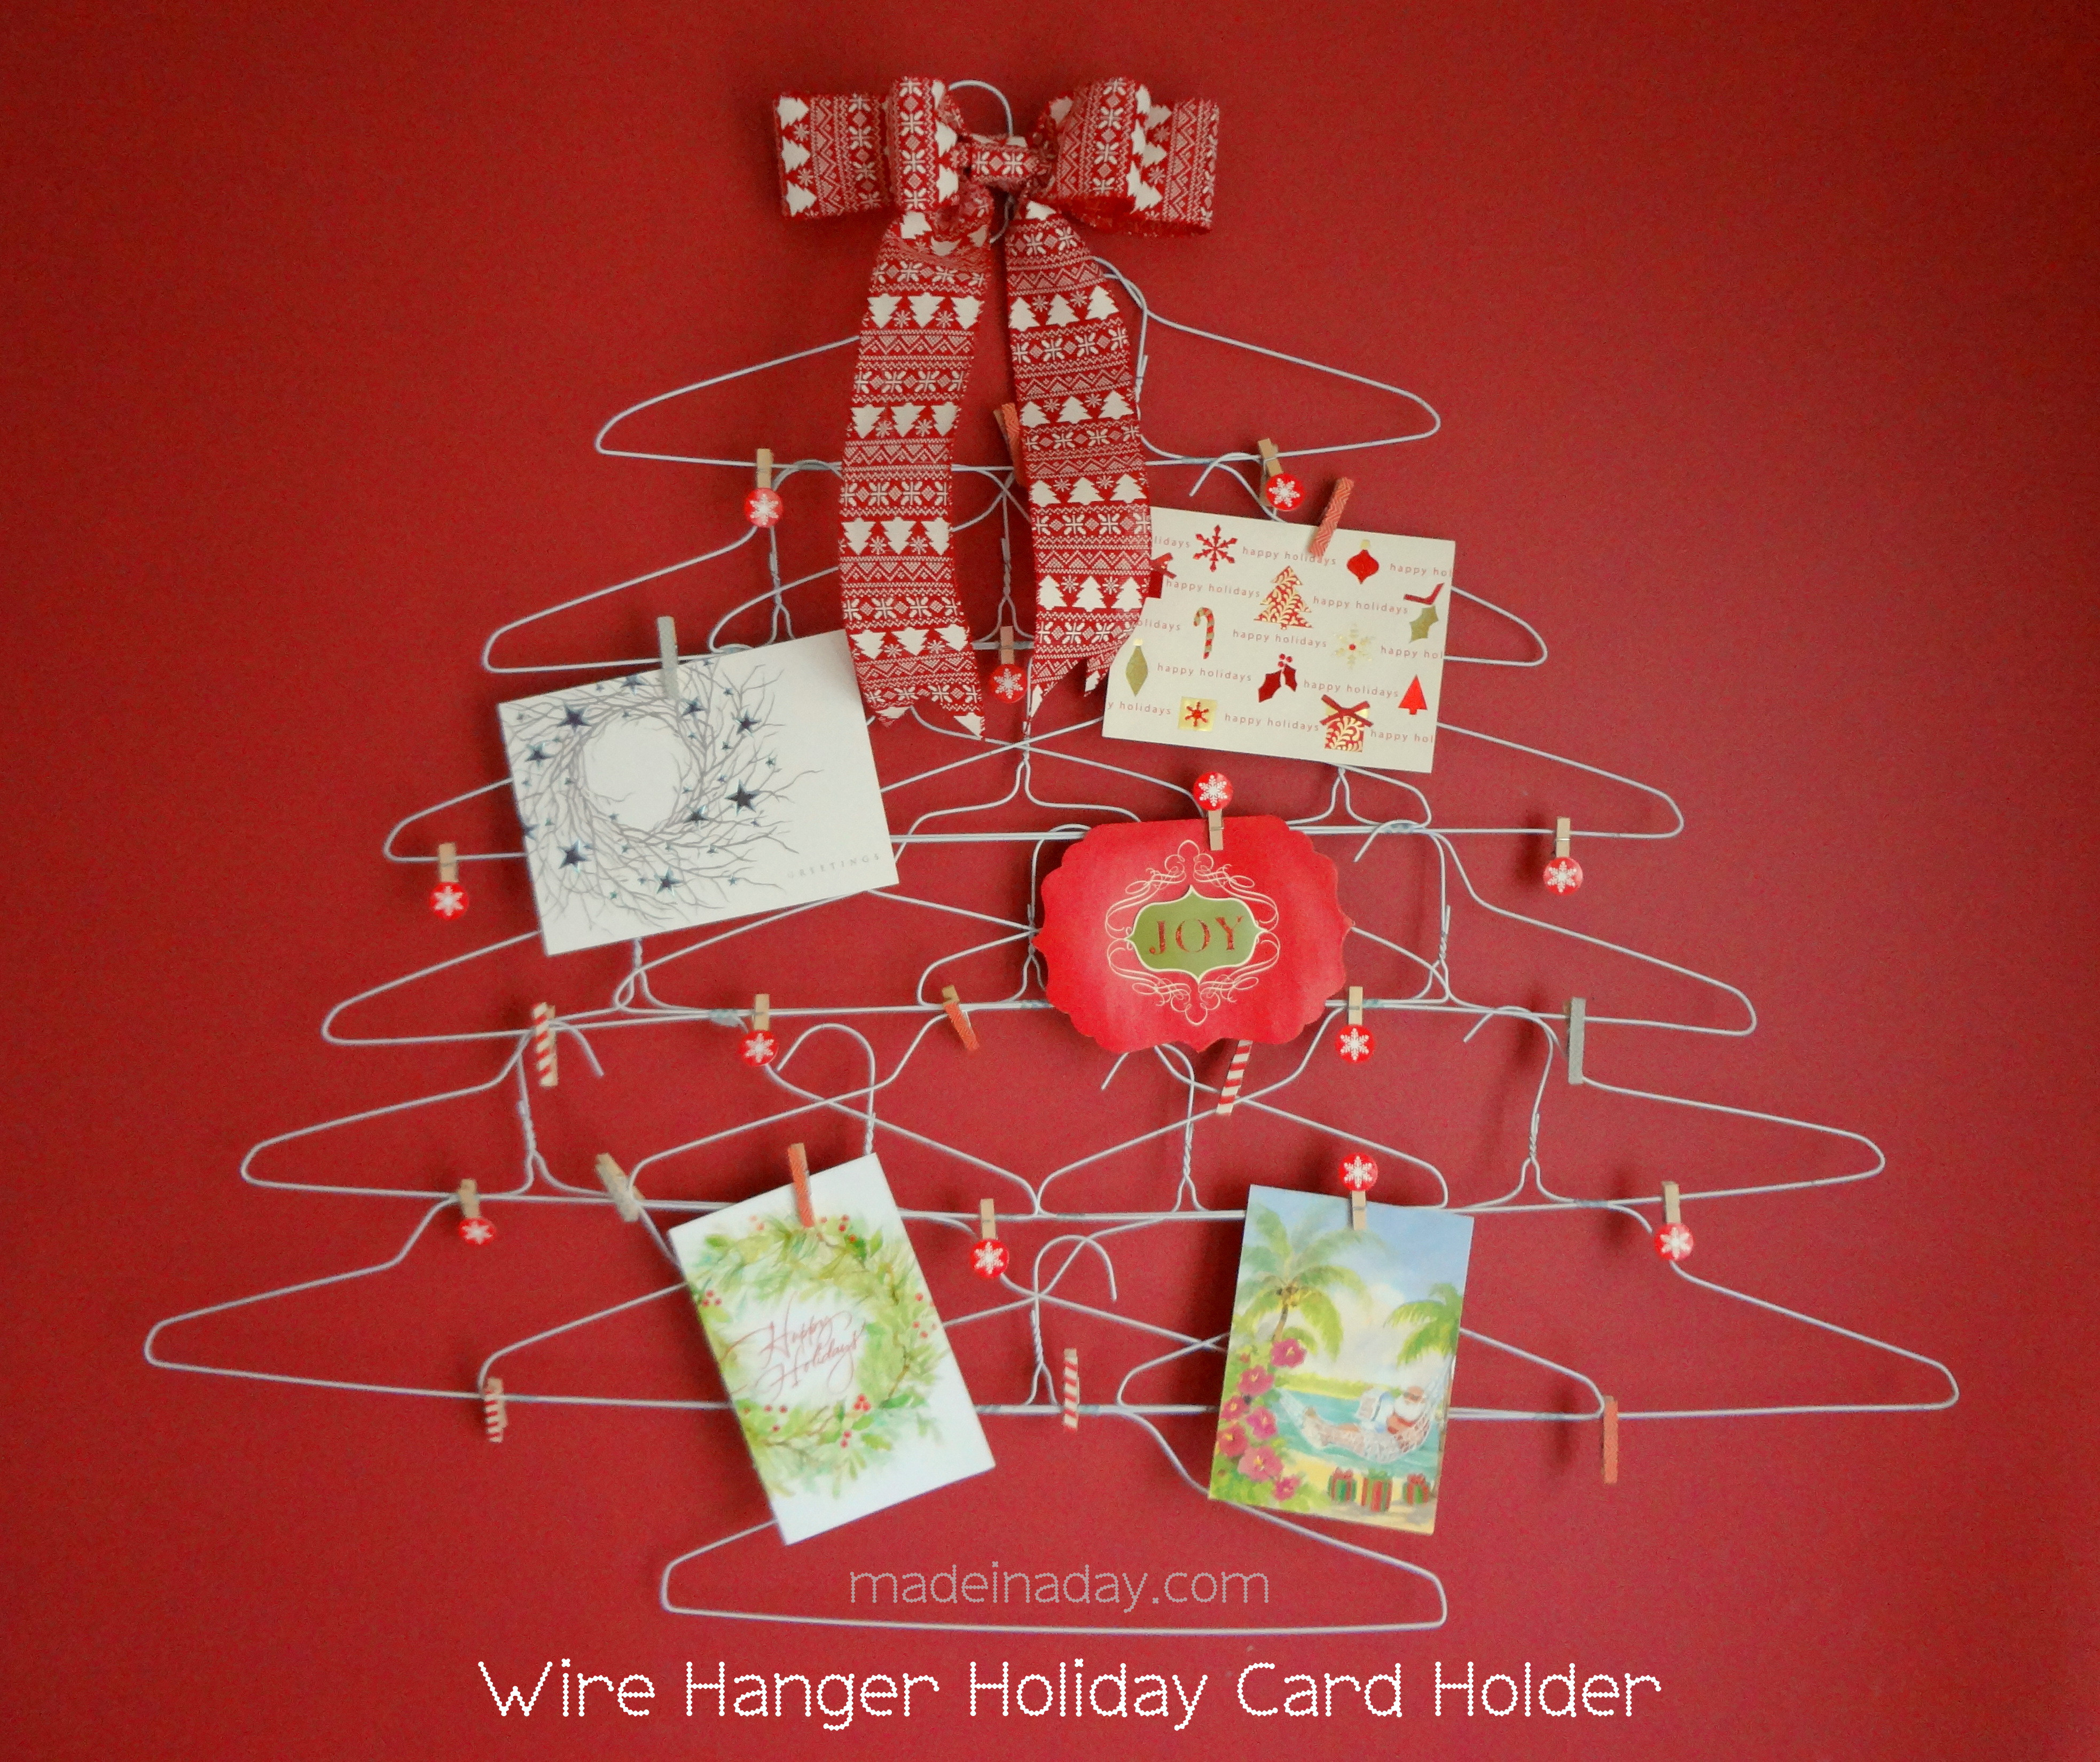 DIY Christmas Card Holders  Quirky Wire Hanger Holiday Card Holder